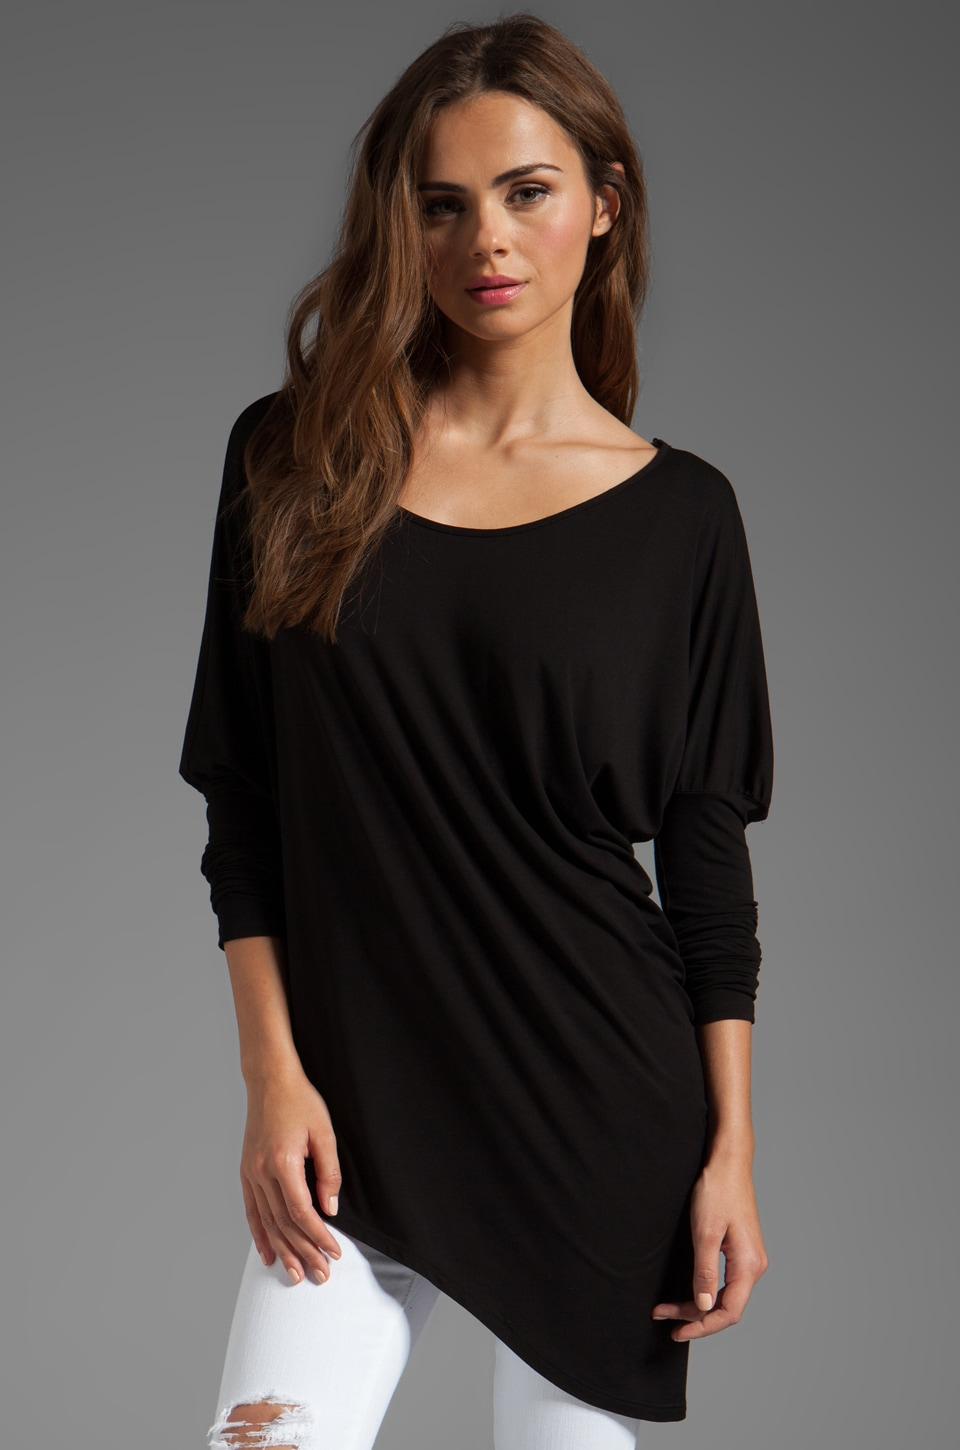 James & Joy Paige Asymmetrical Top in Black